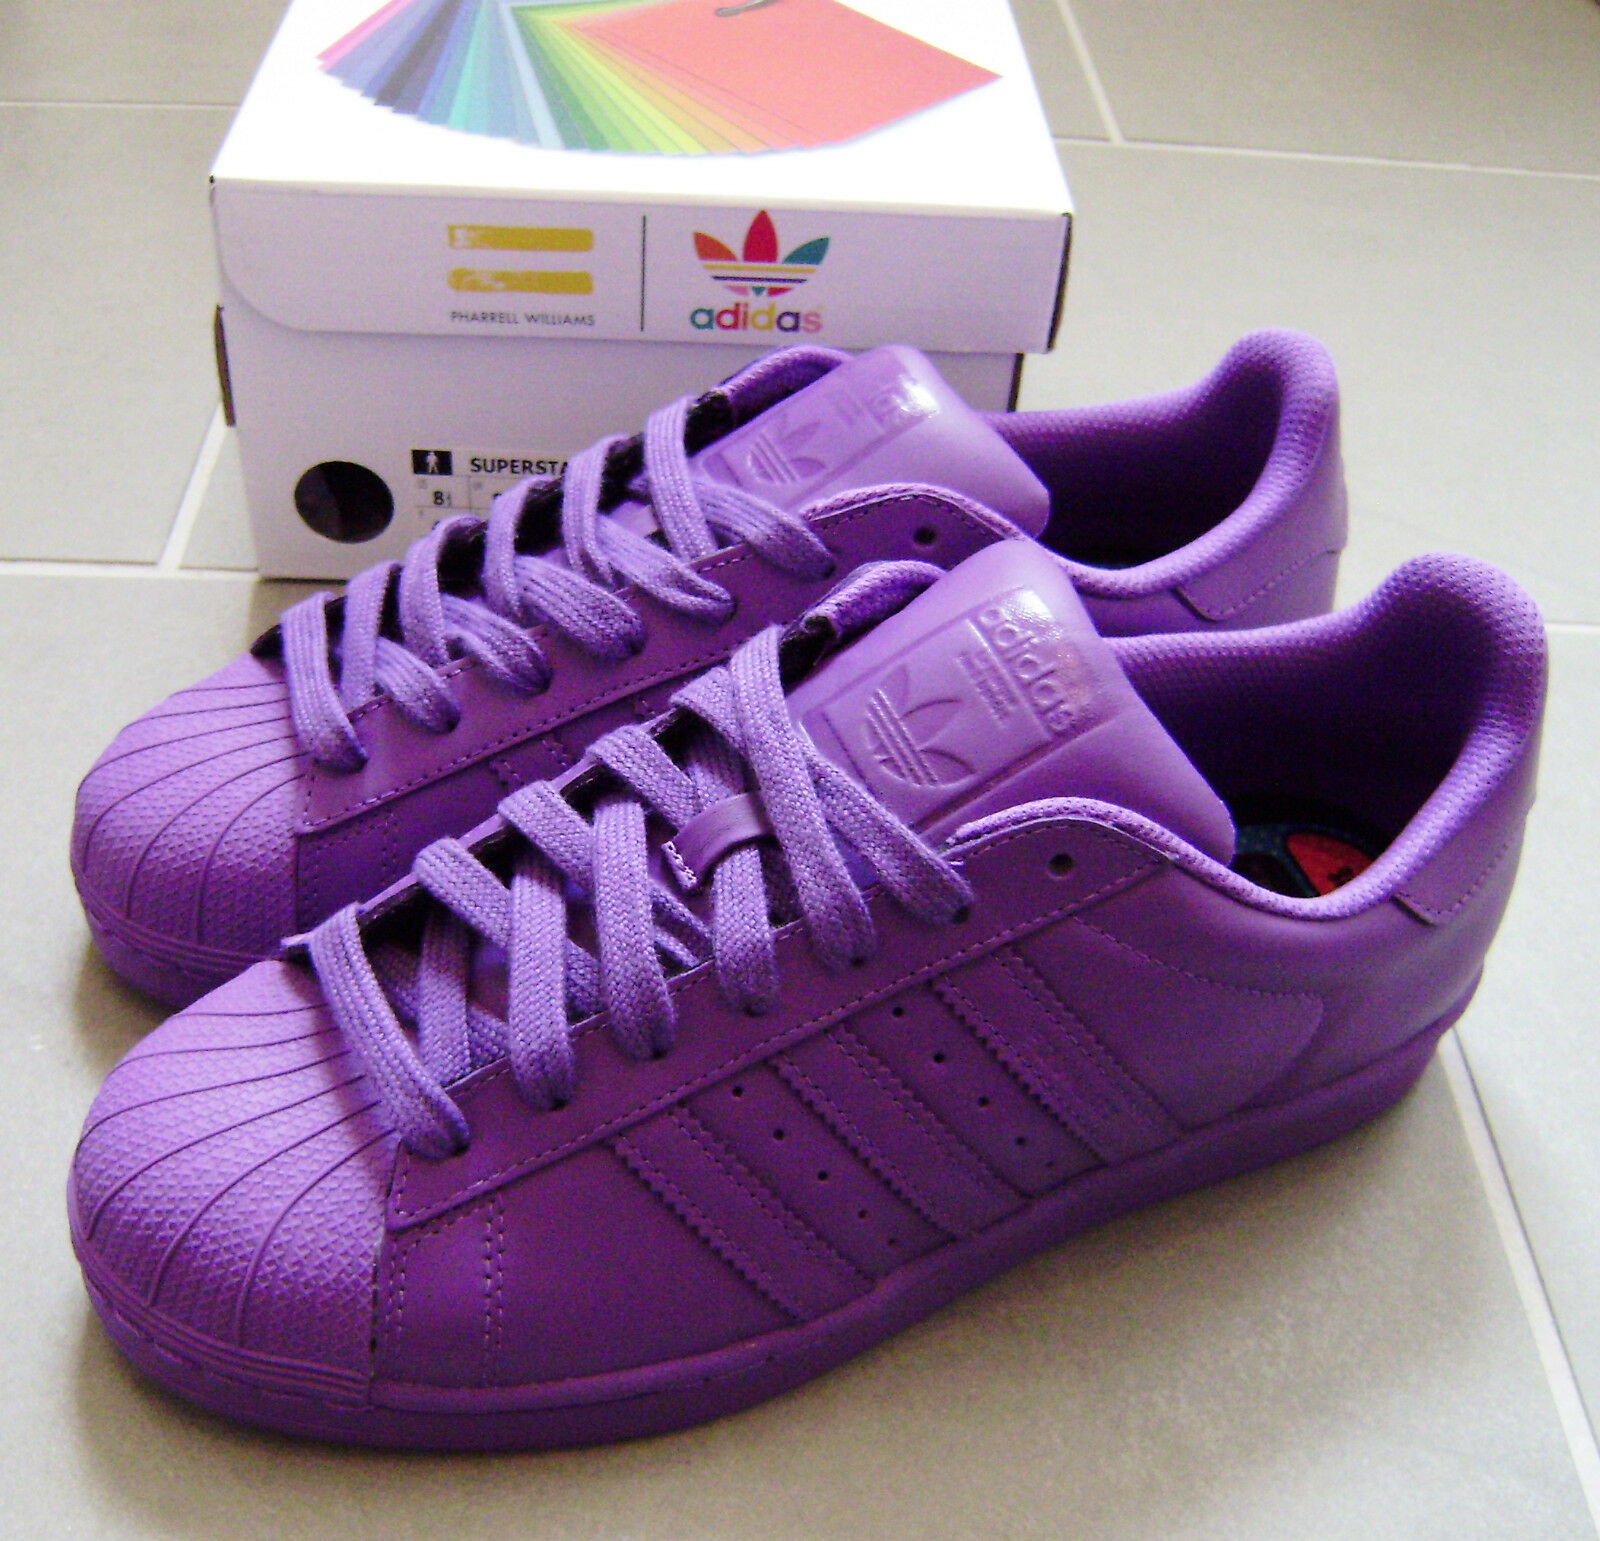 Adidas NEW Superstar Pharrell Williams Shoes NEW Adidas Purple Size 9 Sold Out es etnies 557a02